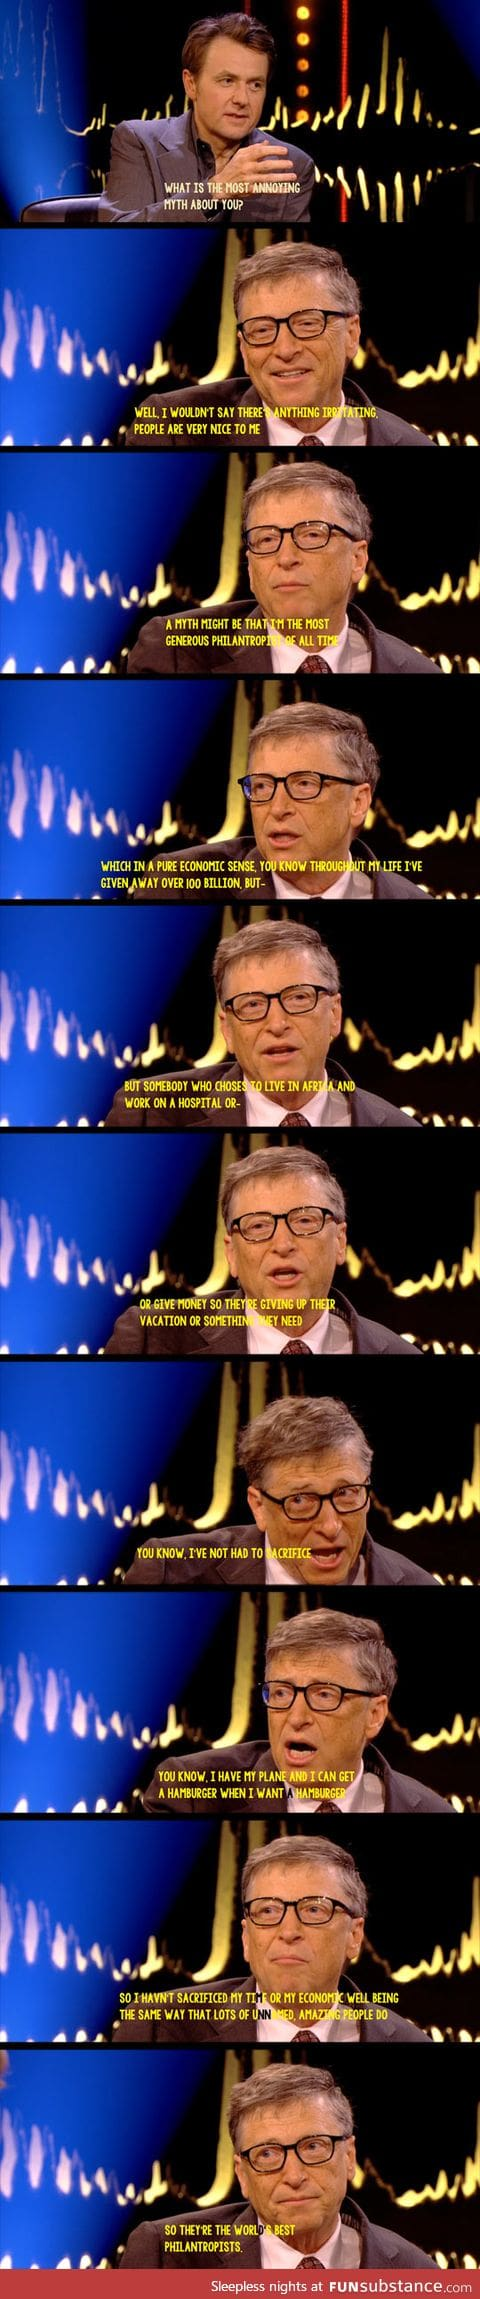 Bill gates' most annoying myth